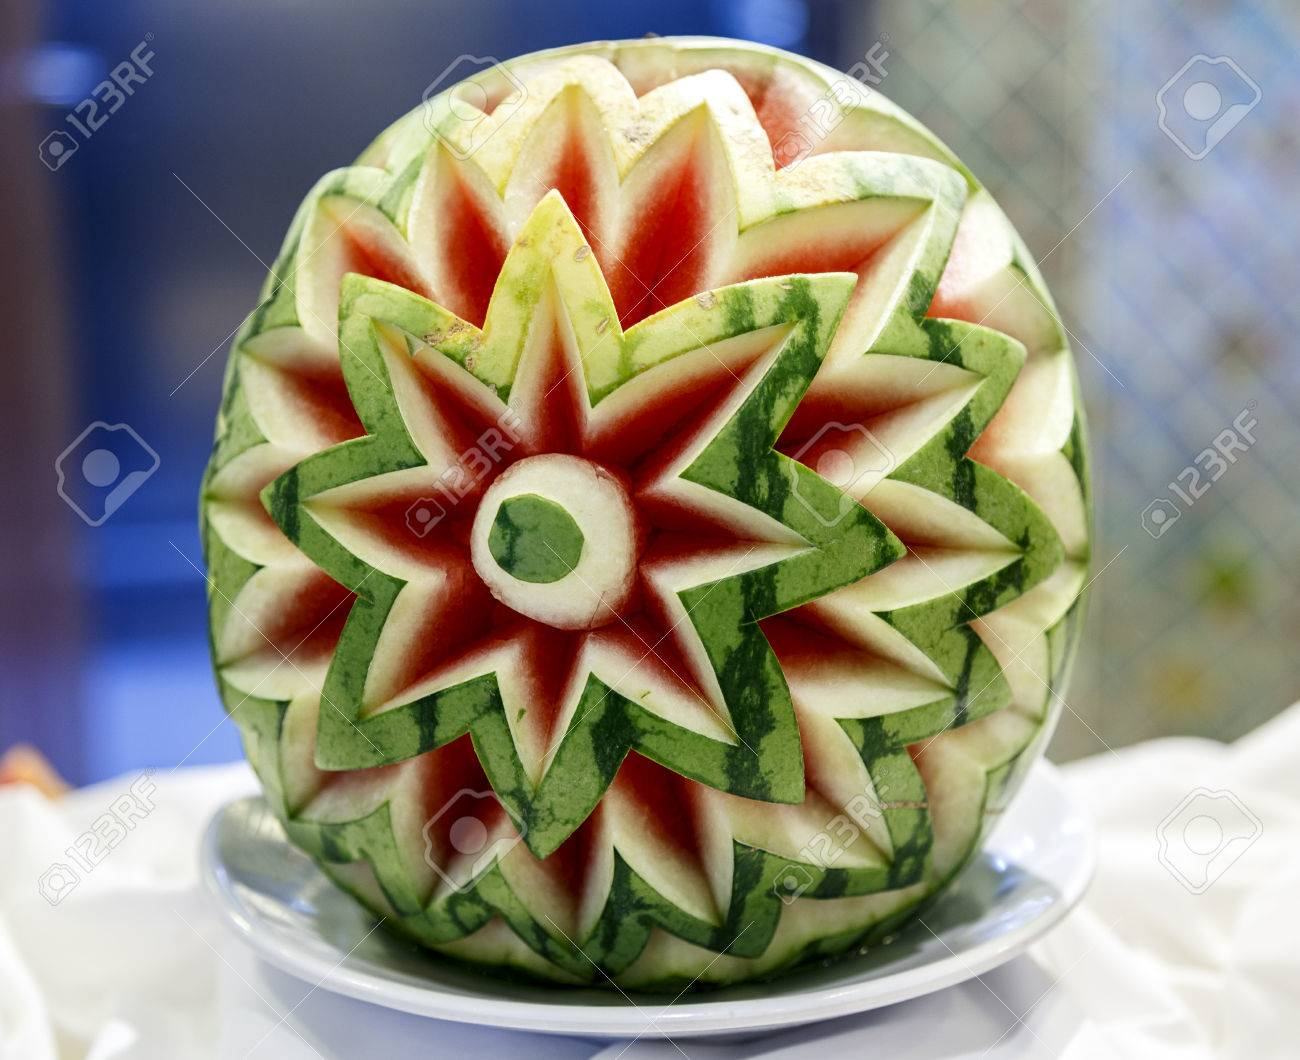 Cut watermelon decoration typical restaurants and cruises ways